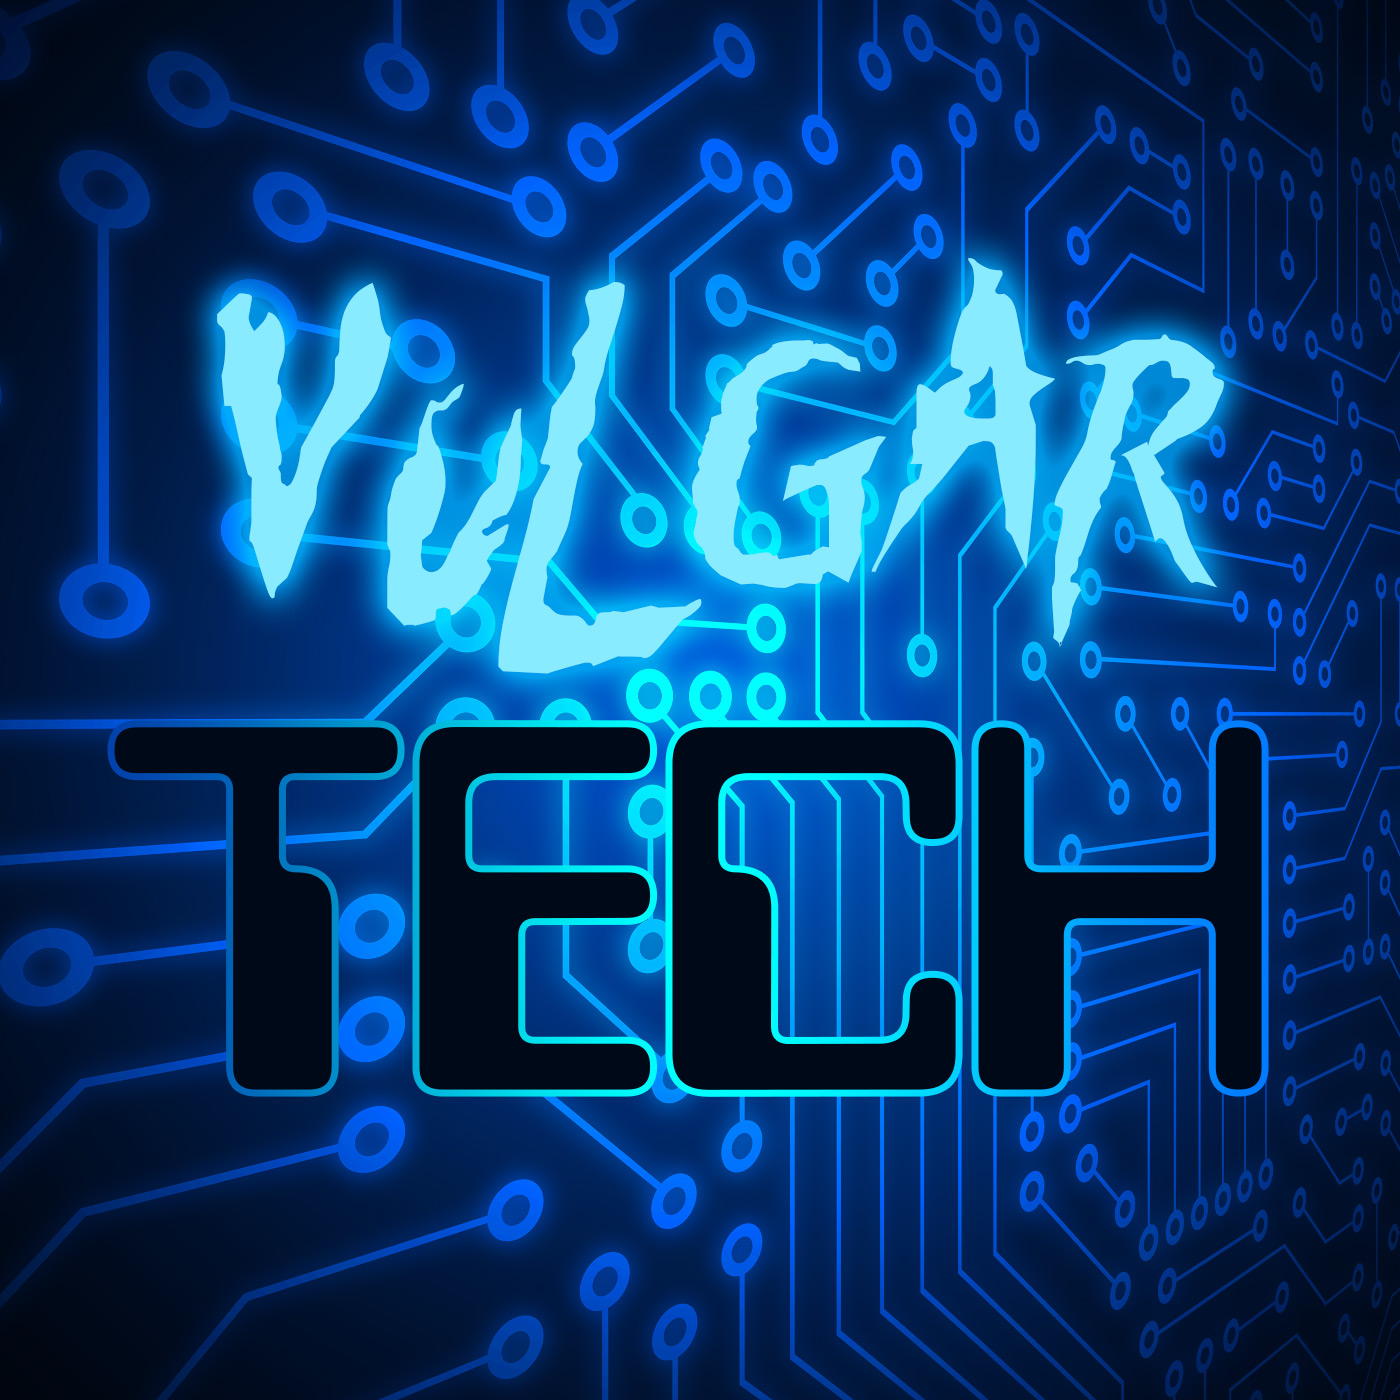 Vulgar Tech 010 : The Uber for Things, The Internet of Things, Teledildonics, VR Porn, and Silk Road